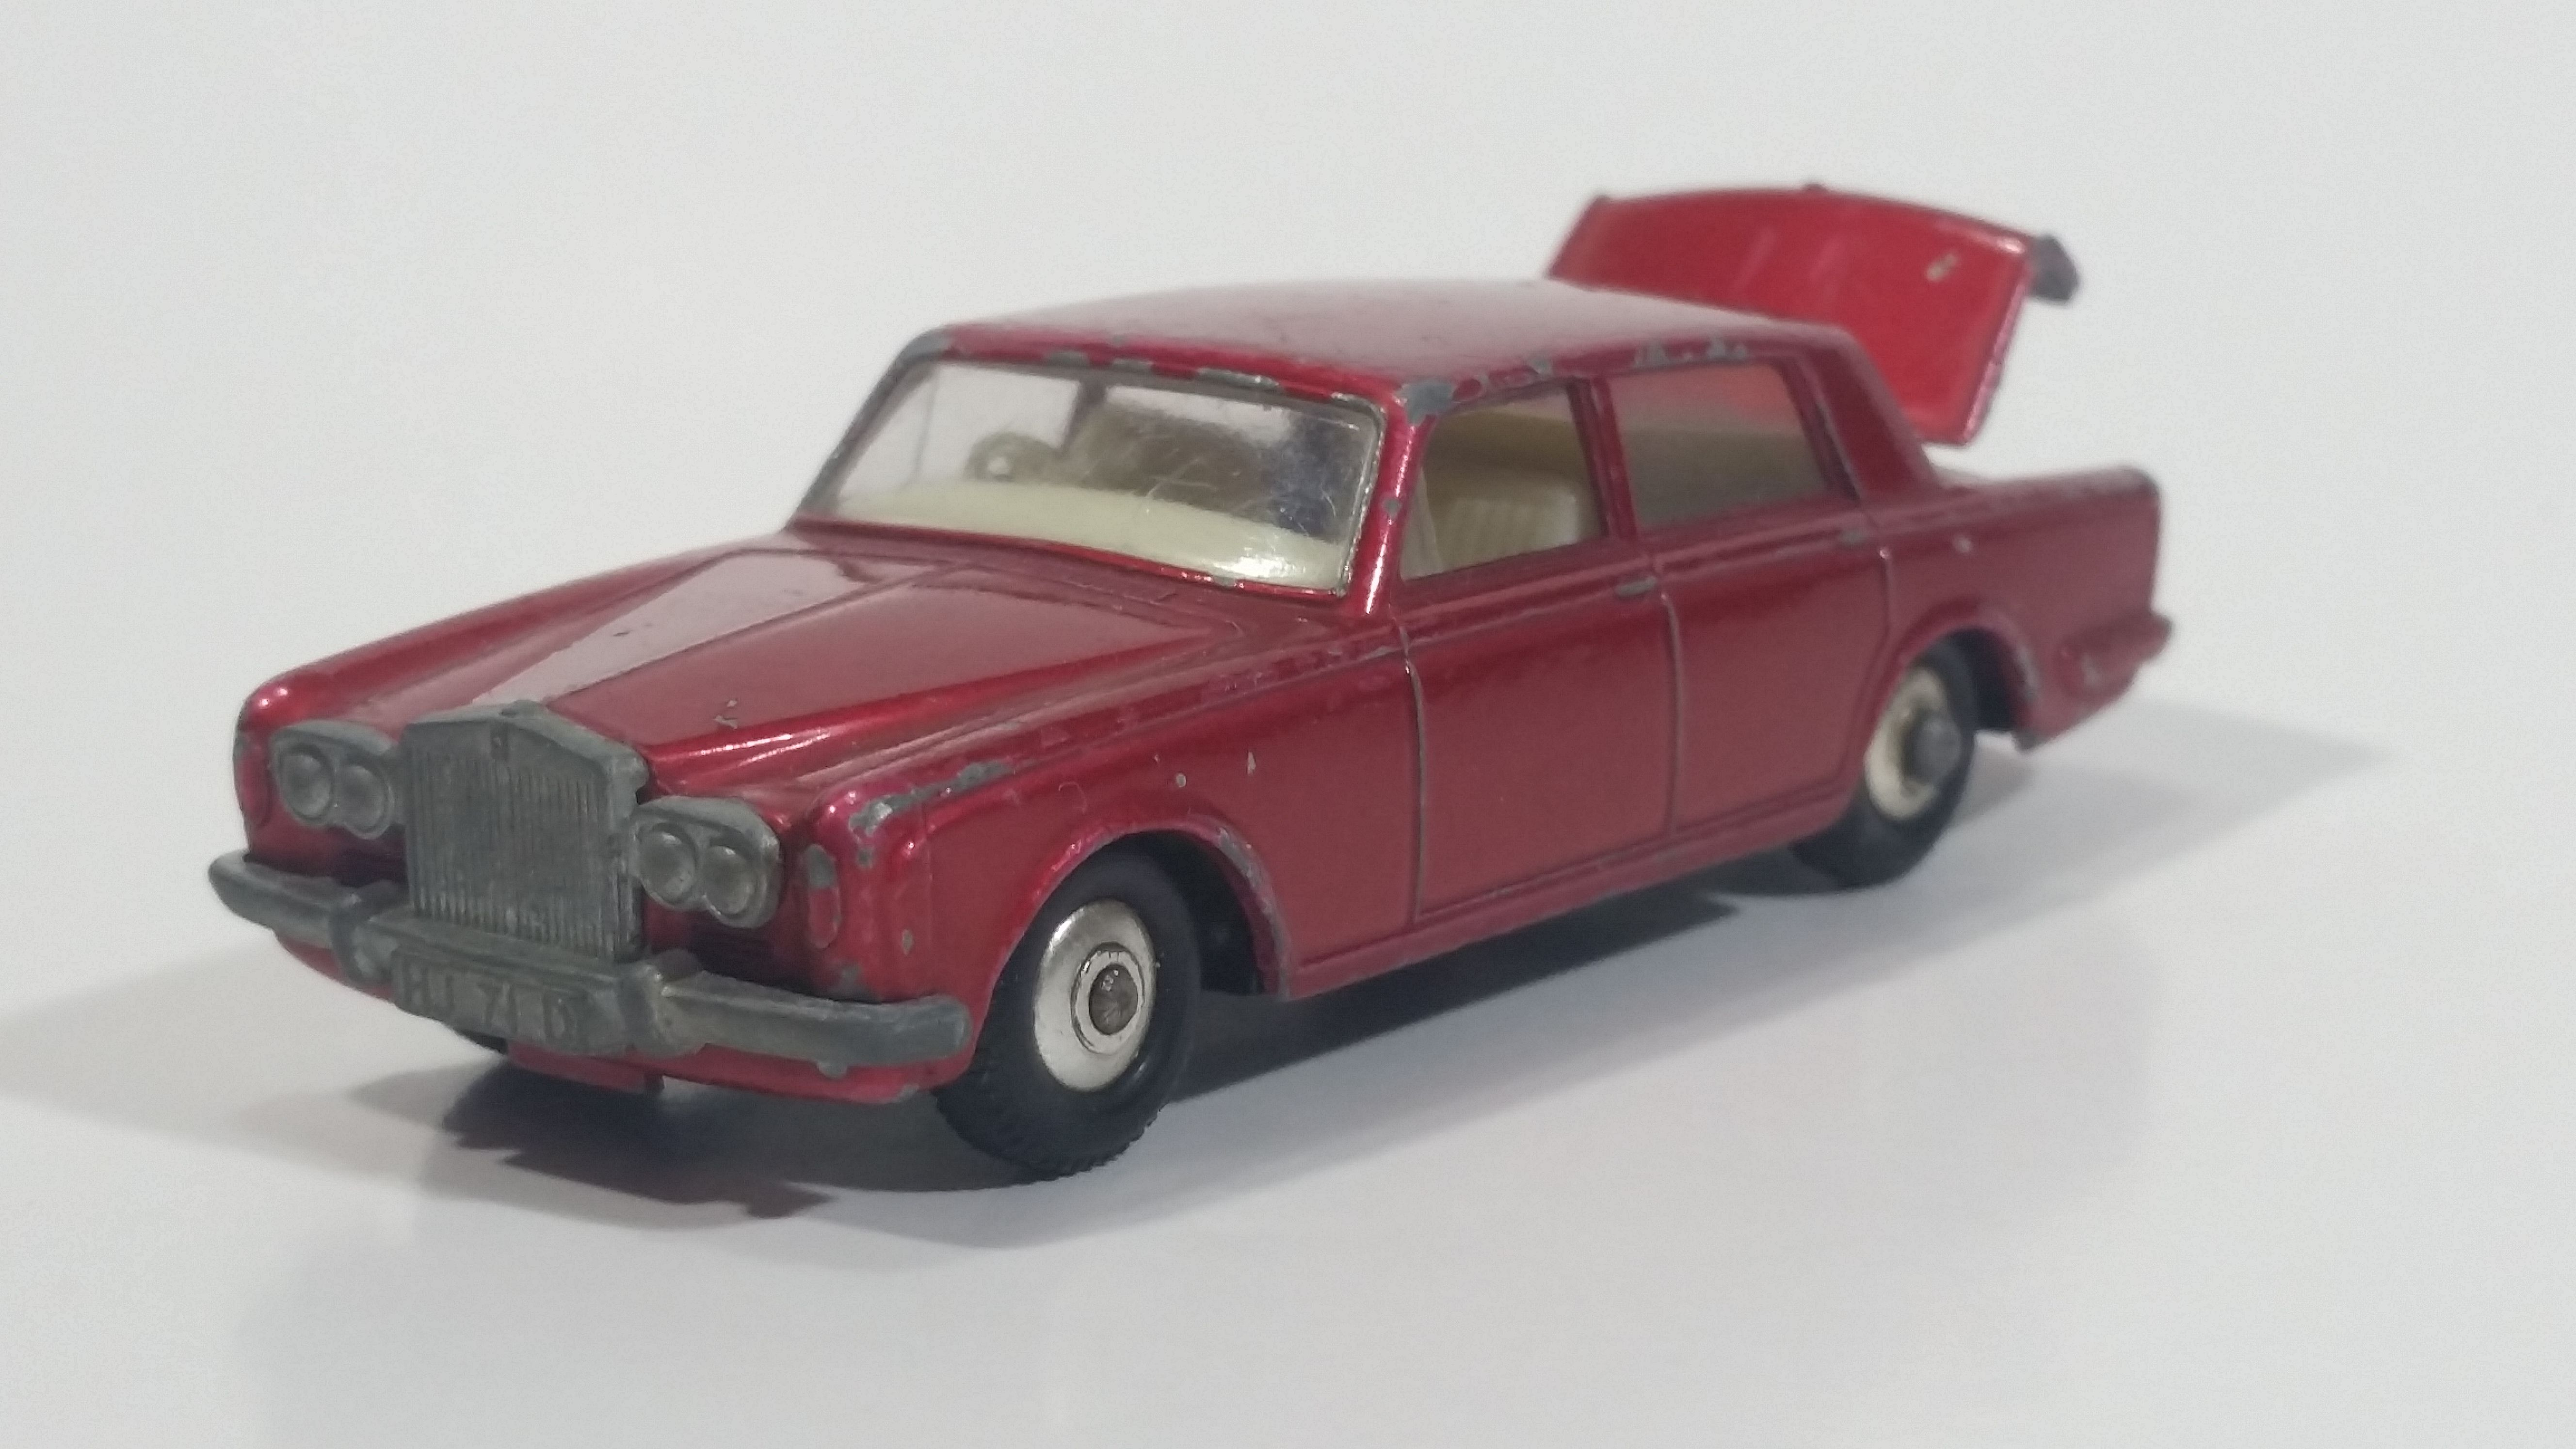 Vintage Lesney Products Matchbox Rolls Royce Silver Shadow Red No 24 Die Cast Toy Car Vehicle With Opening Trunk Toy Car Rolls Royce Silver Shadow Rolls Royce